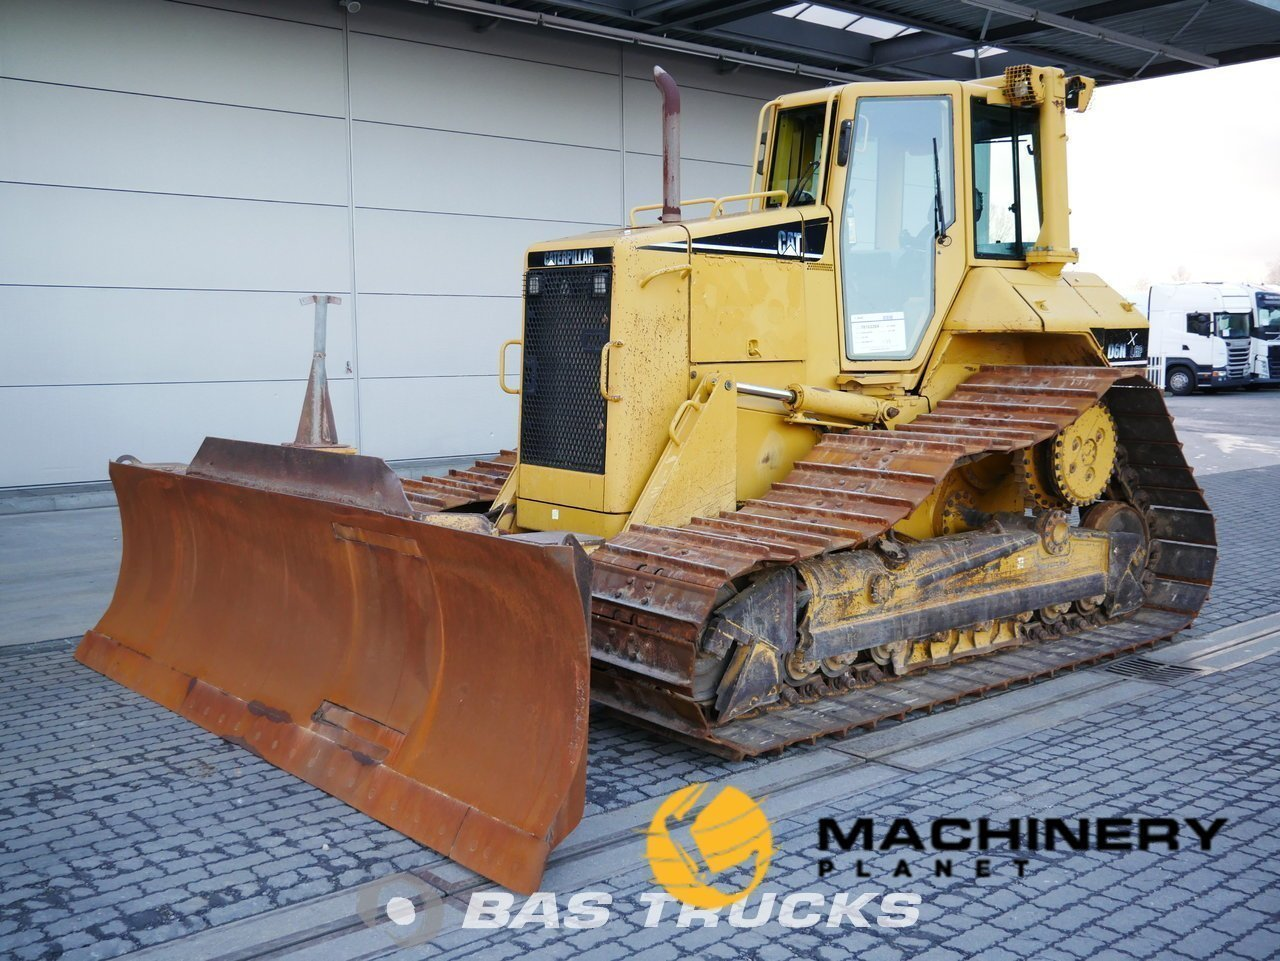 Used-Construction-equipment-Caterpillar-D6N-LGP-Track-2005_145508_1-1554107026654_5ca1ca929fca1-1.jpg